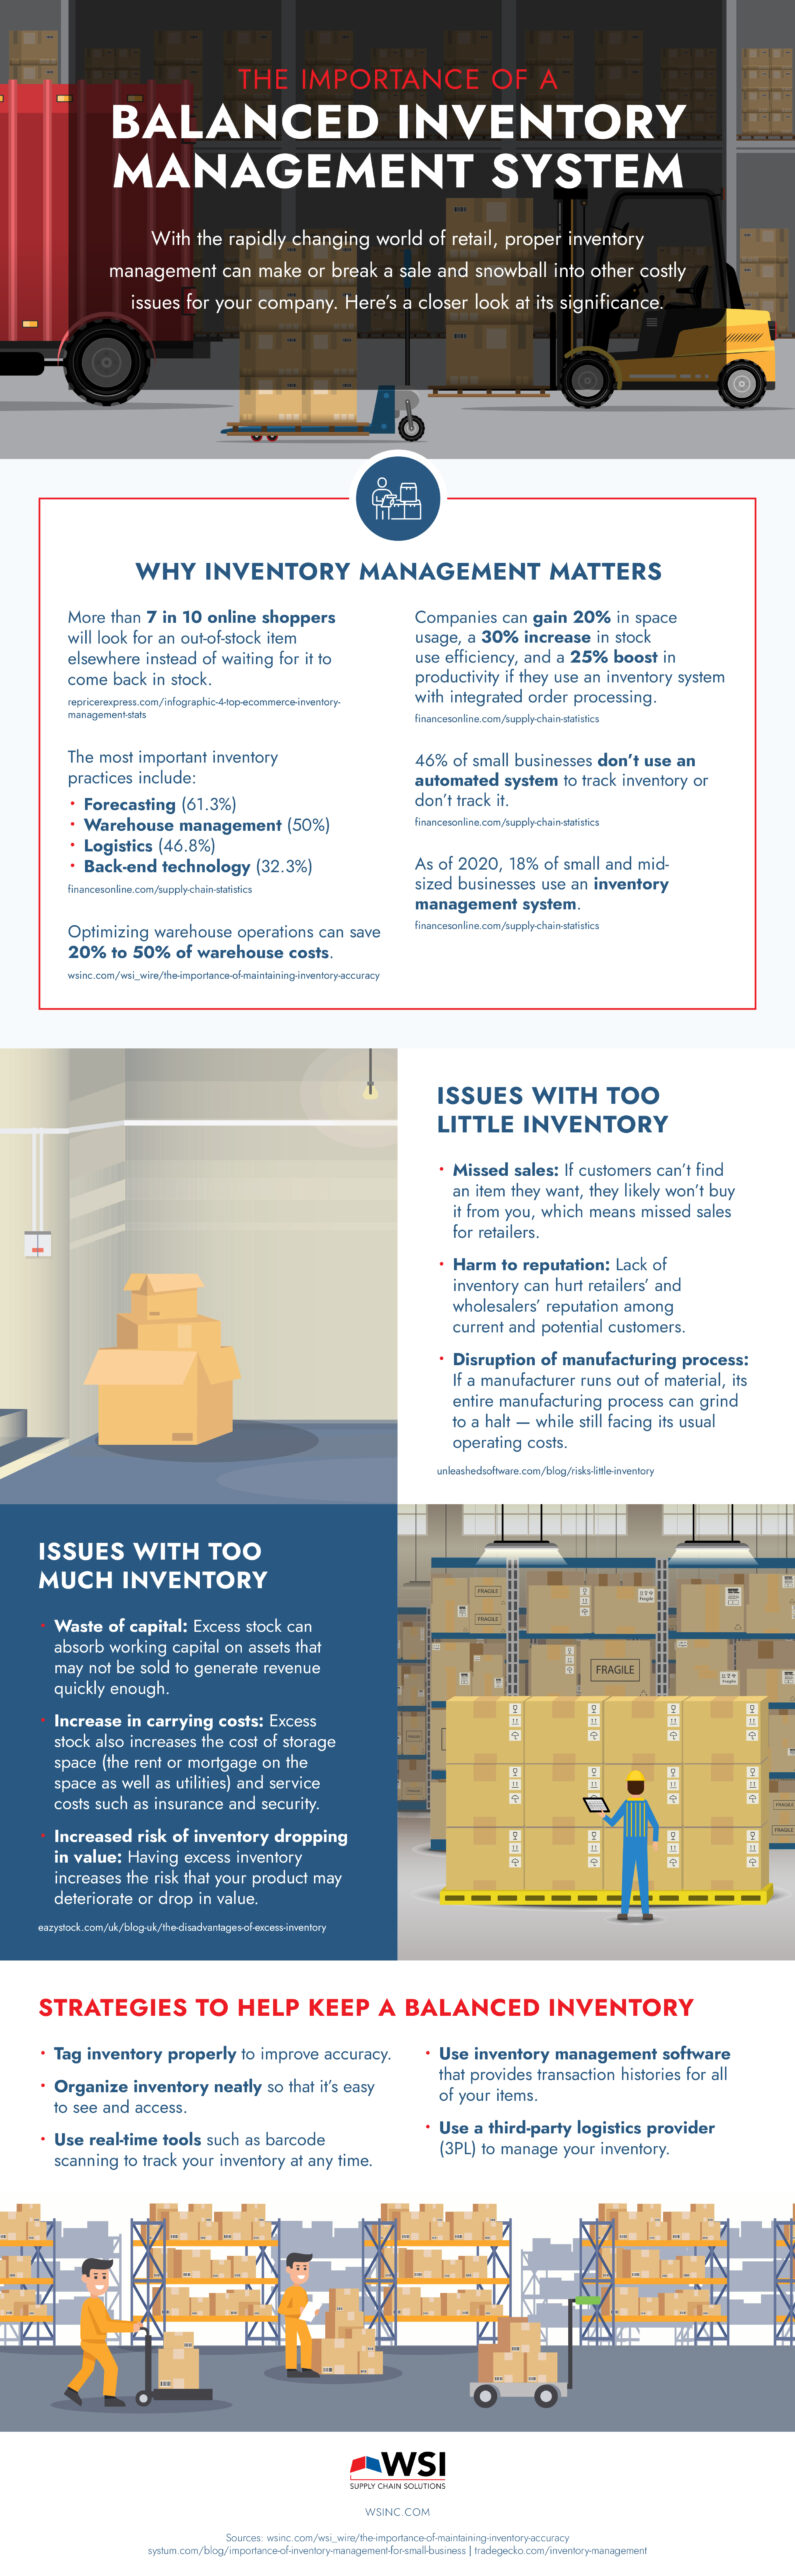 The Importance of a balanced Inventory Management System - Infographic